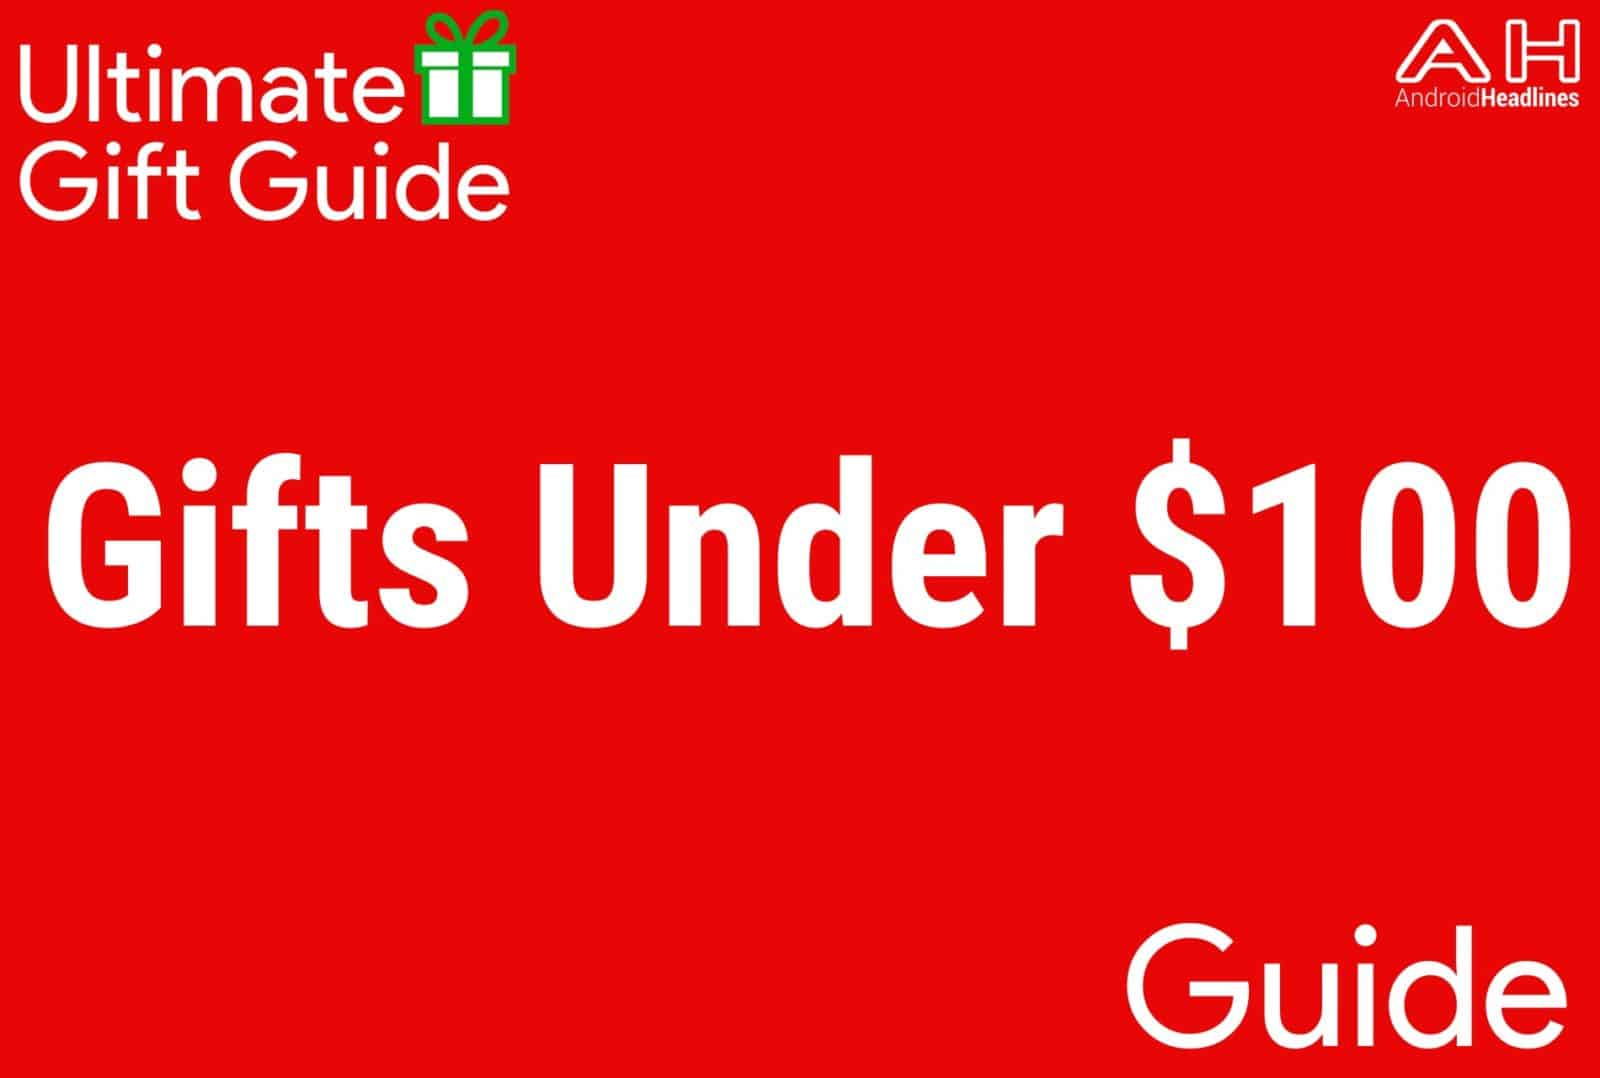 Gifts Under $100 - Gift Guide 2015